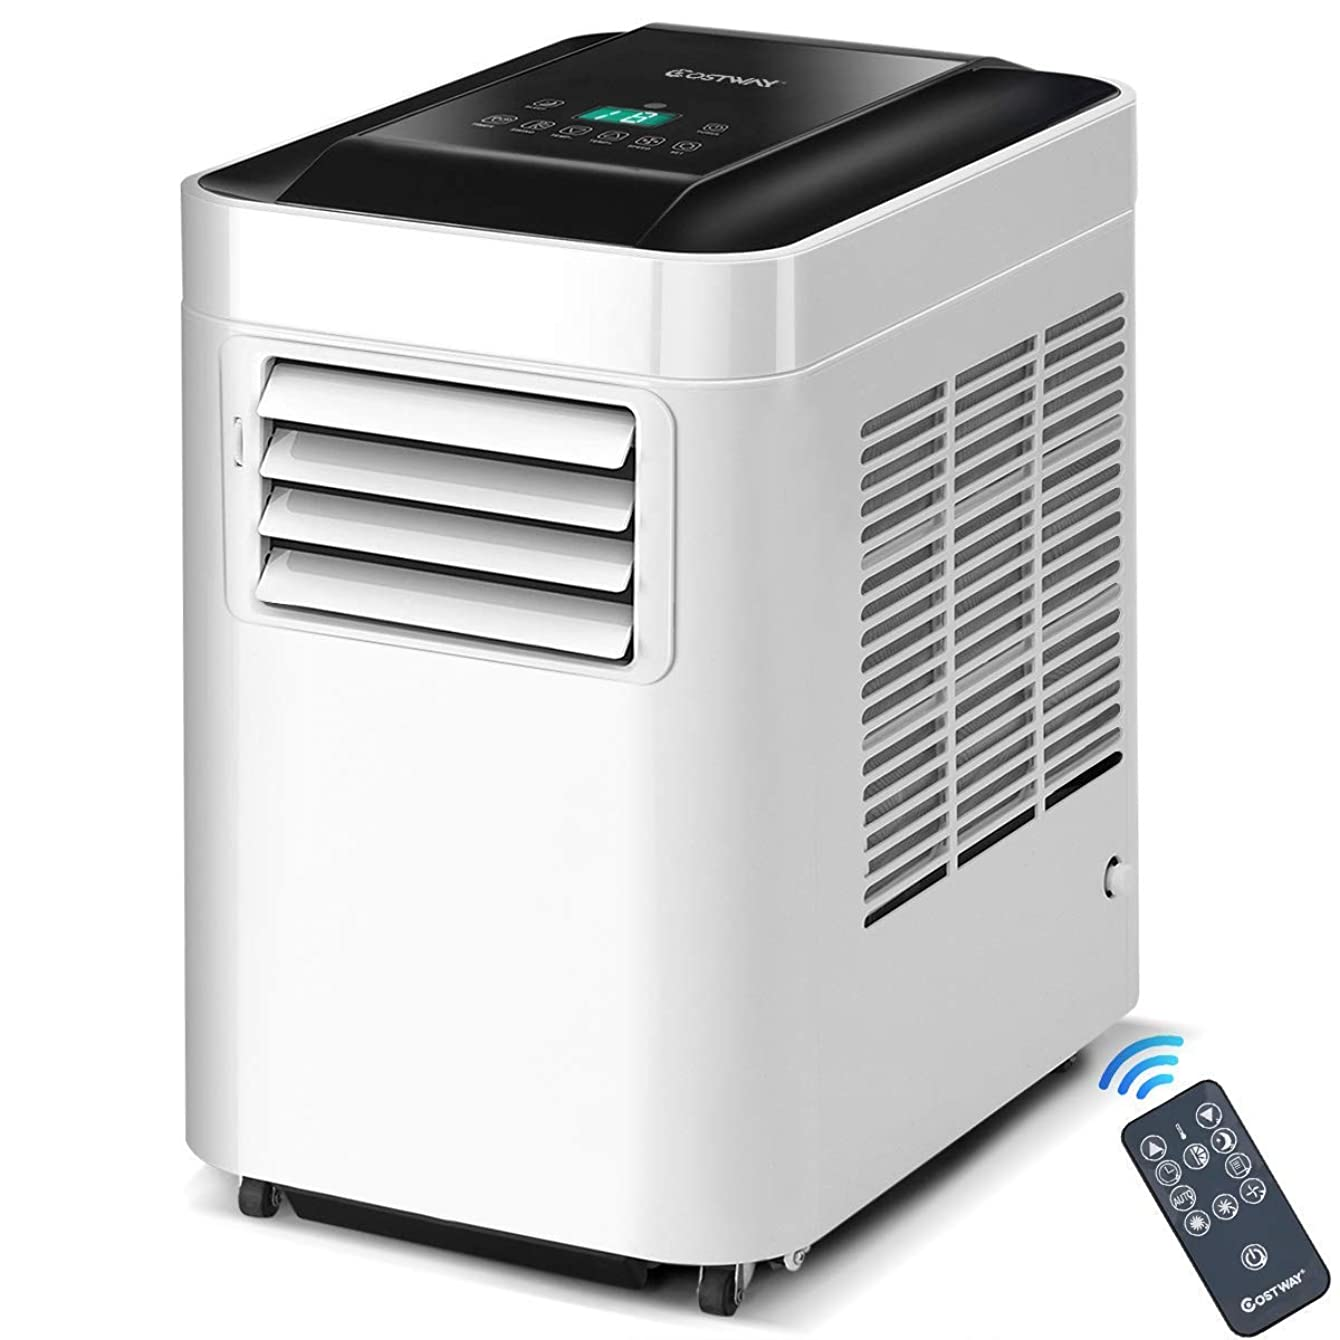 COSTWAYUS COSTWAY 10,000 BTU Portable Air Conditioner Unit with Dehumidifier & Fan for Rooms up to 200 Sq. Ft. with Remote Control, LCD Display, and Casters White